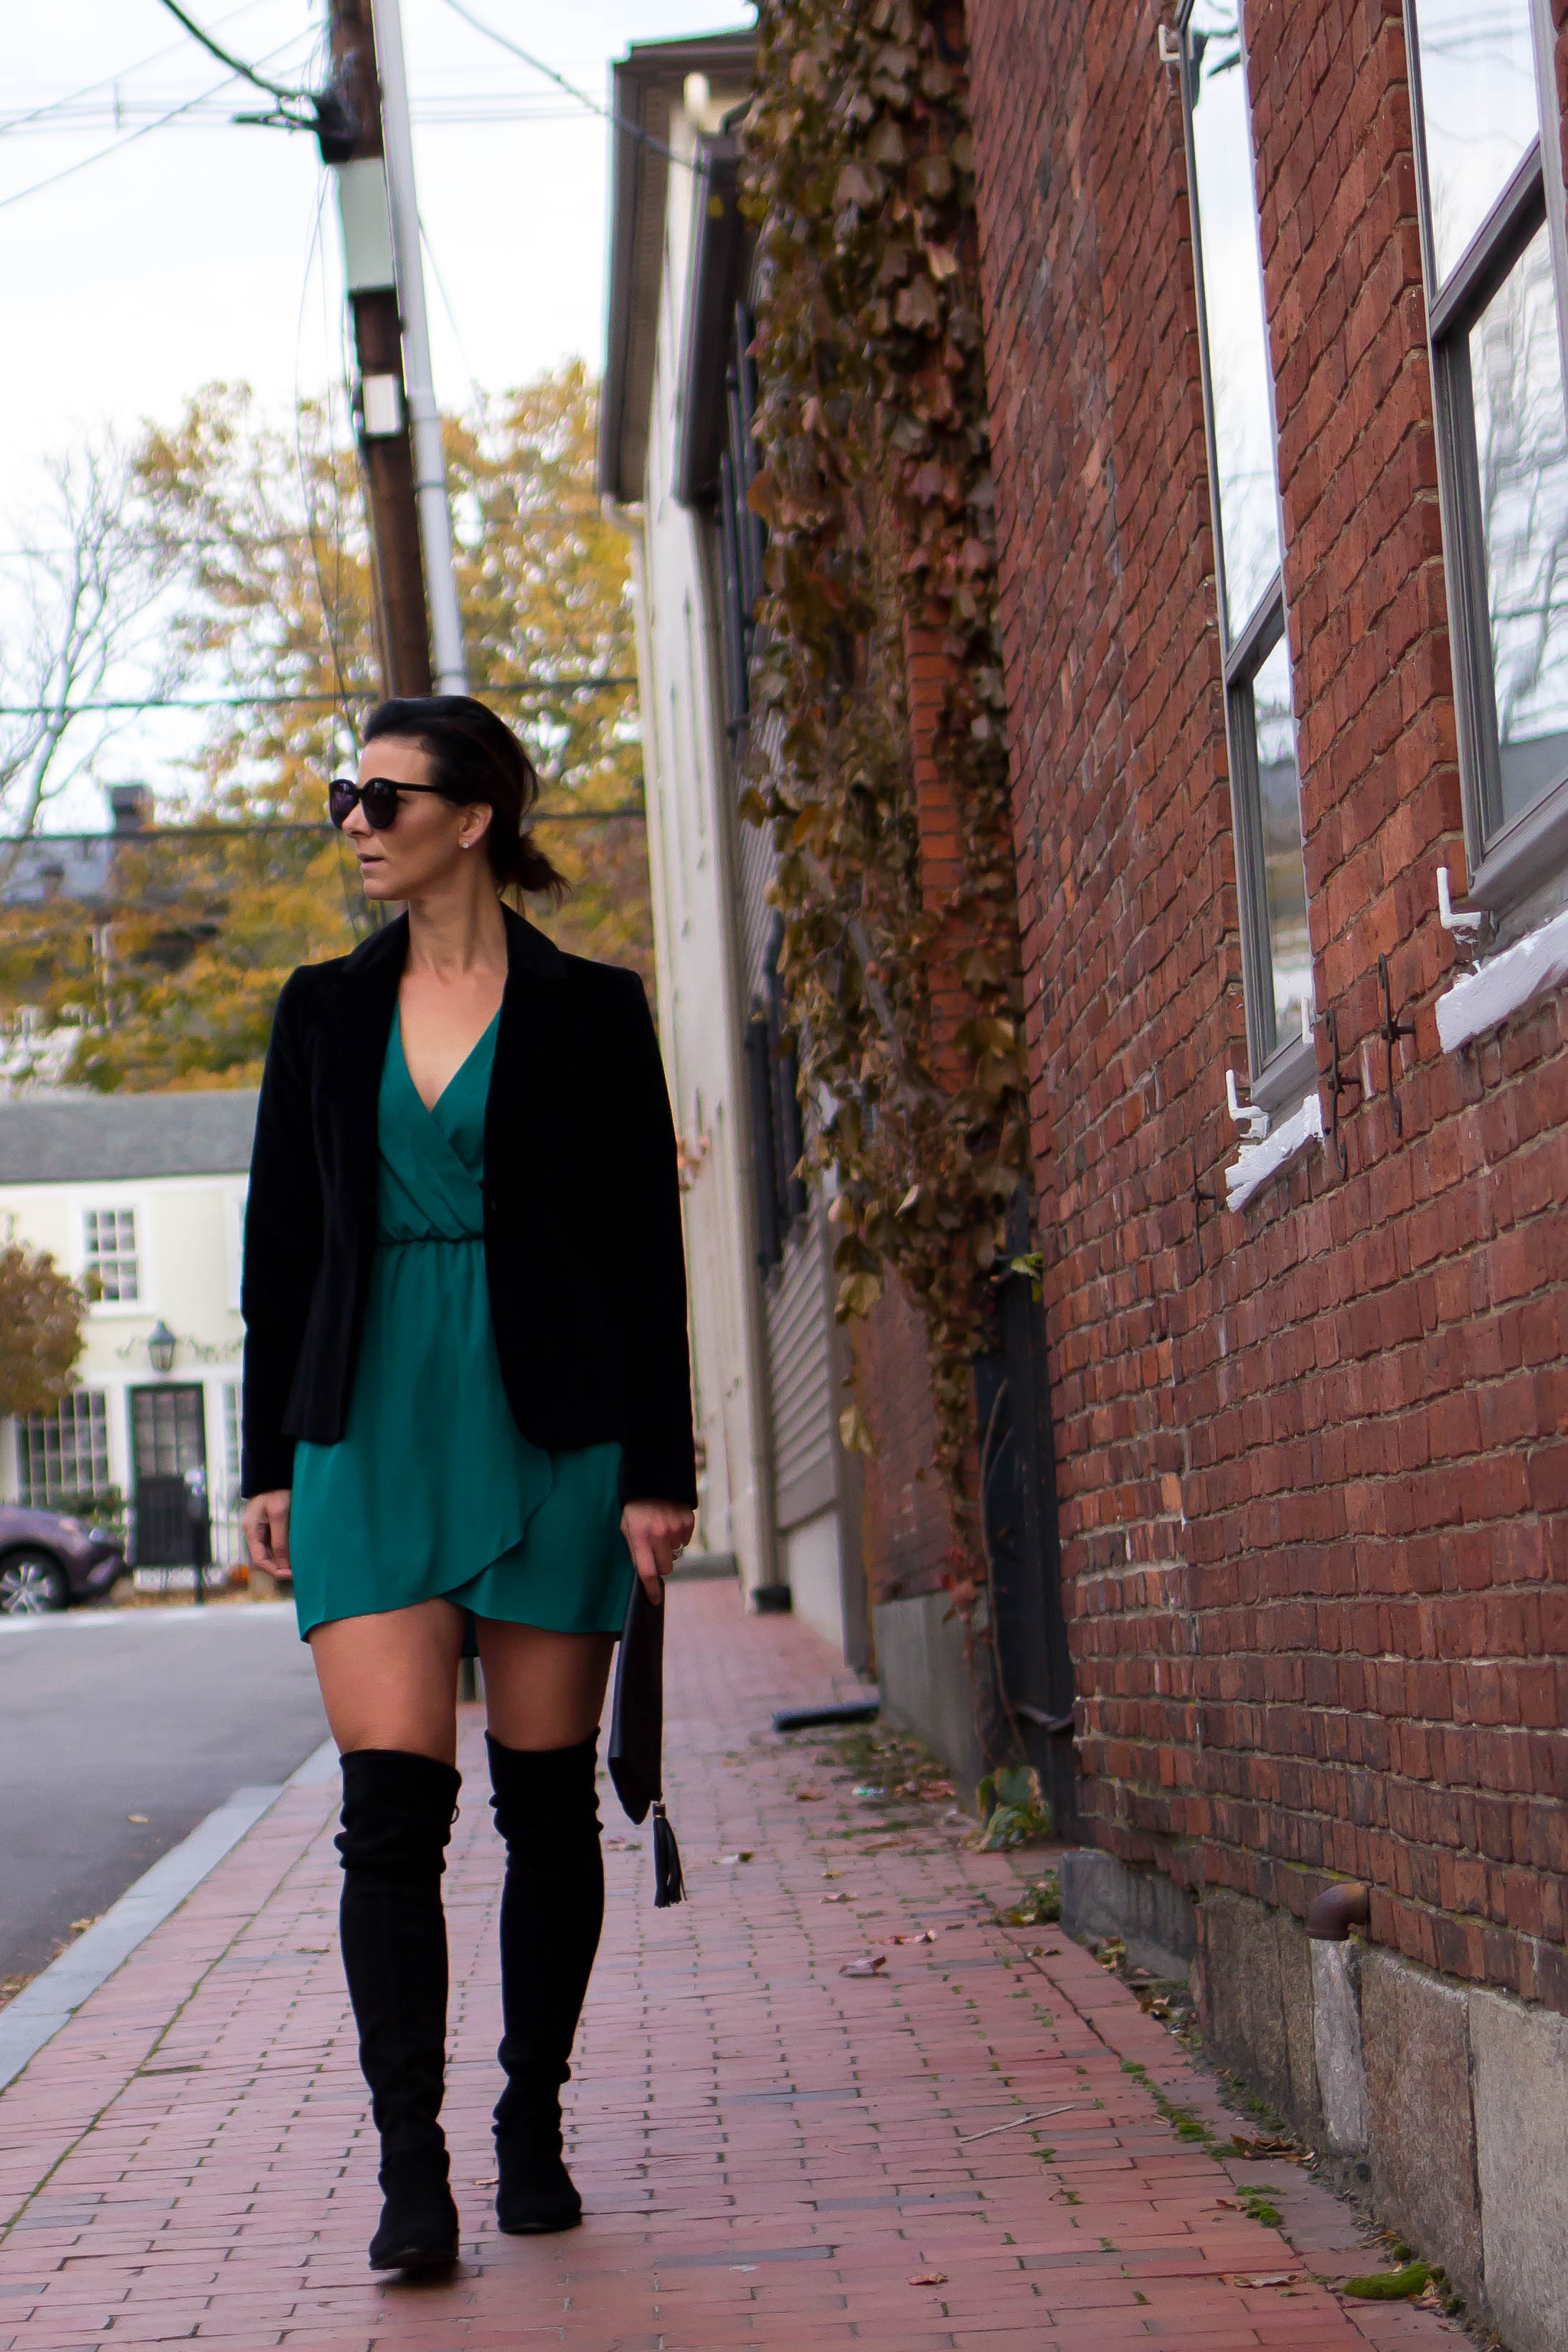 Holiday Outfits - Teal Dress Outfits – OTK Boots Outfits – Street Style Outfits - Cocktail Party Outfits - Dress Outfits - Fashion for Women – Holiday Party Outfits - Black Velvet Blazer Outfits – Date Night Outfits –  heartandseam.com  #heartandseam #otkboots